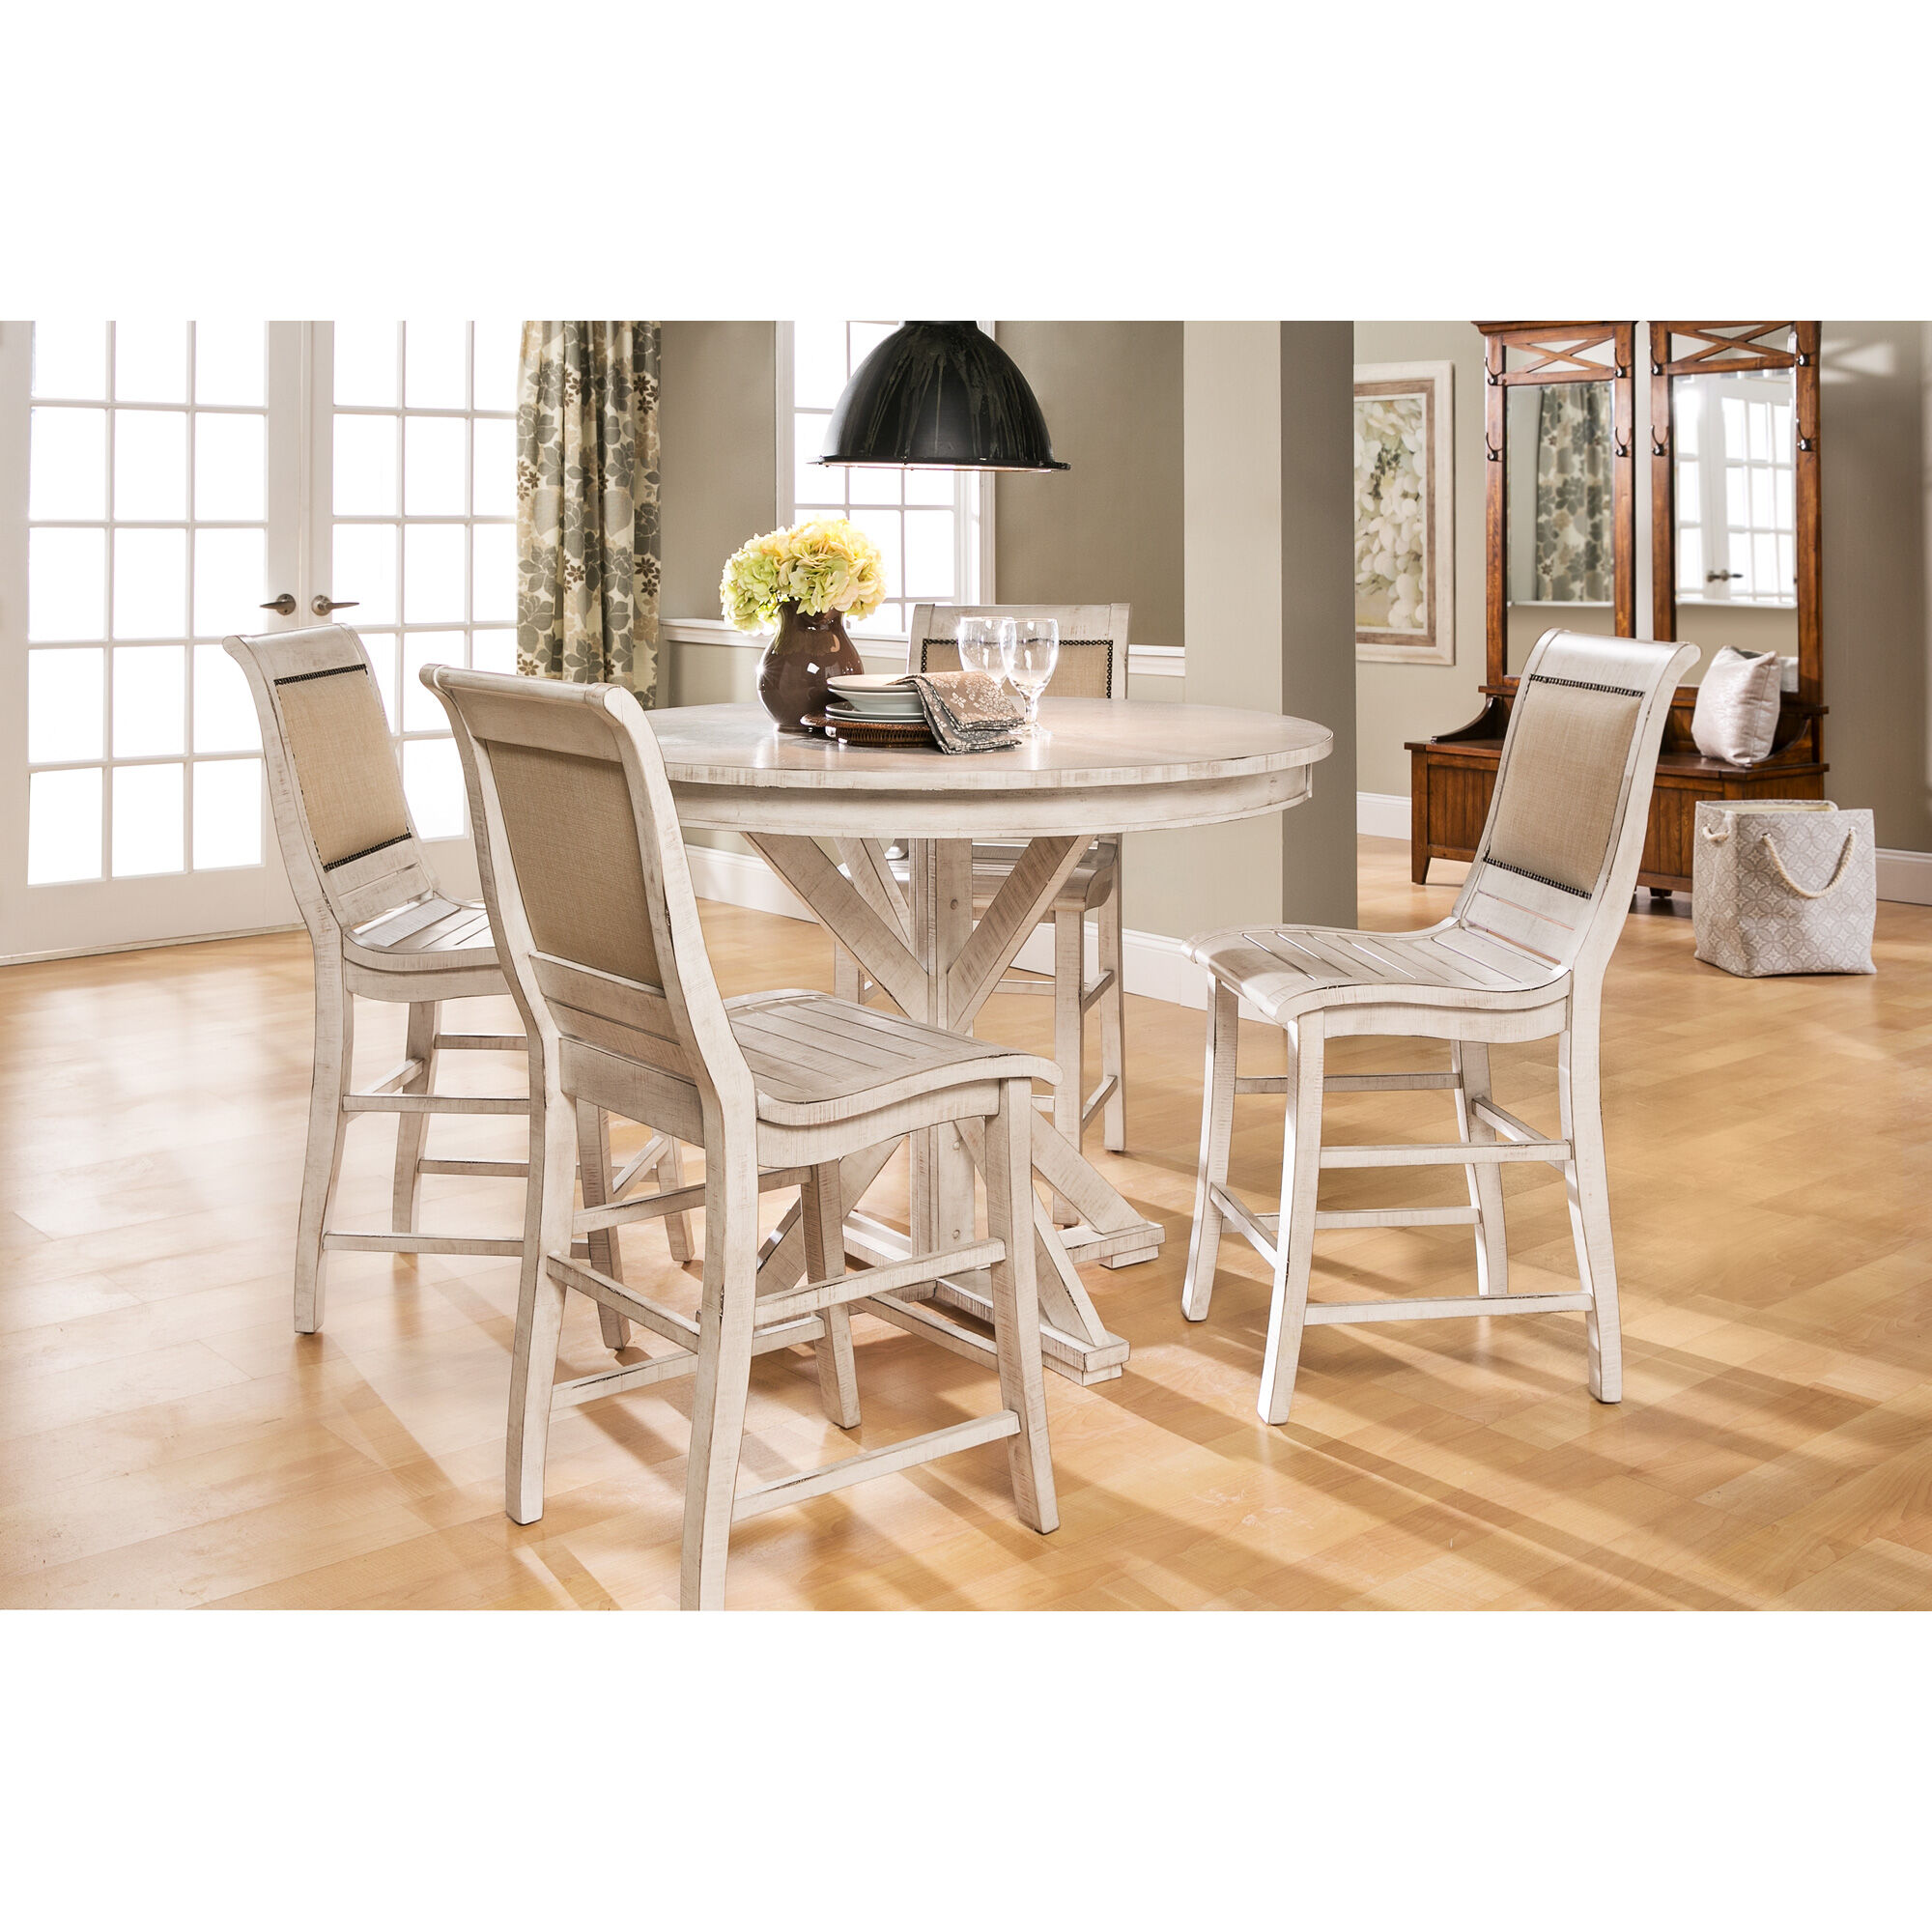 ... Willow White Round Counter Dining Set ...